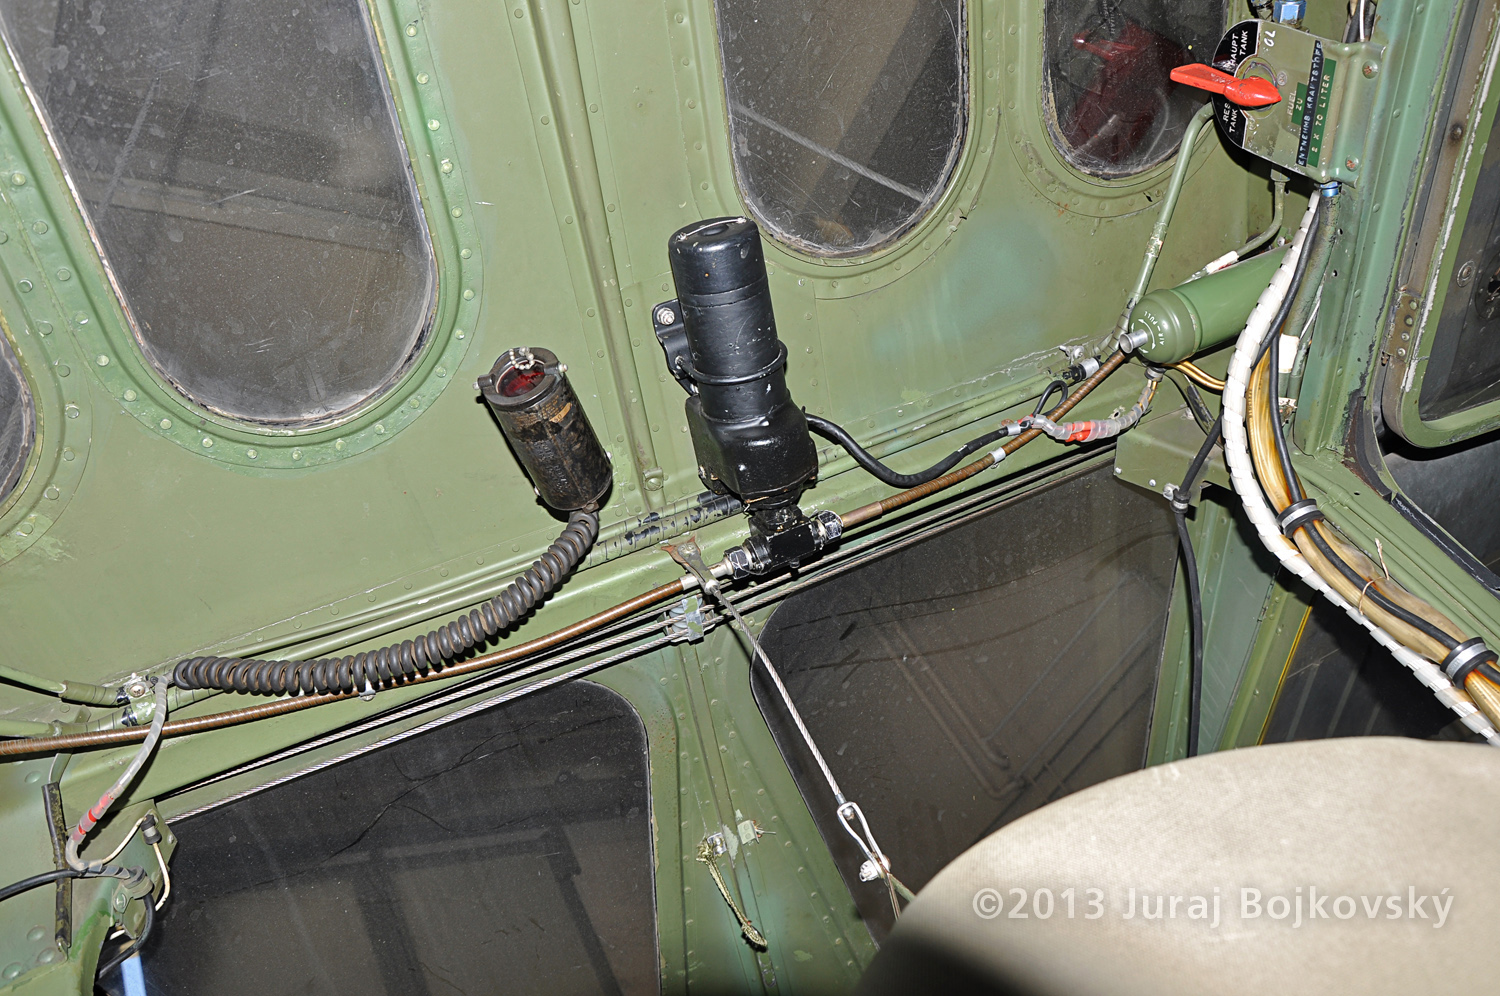 Cessna O -1 / L-19 Bird Dog, Austrian army, cockpit, top wall, rear portion